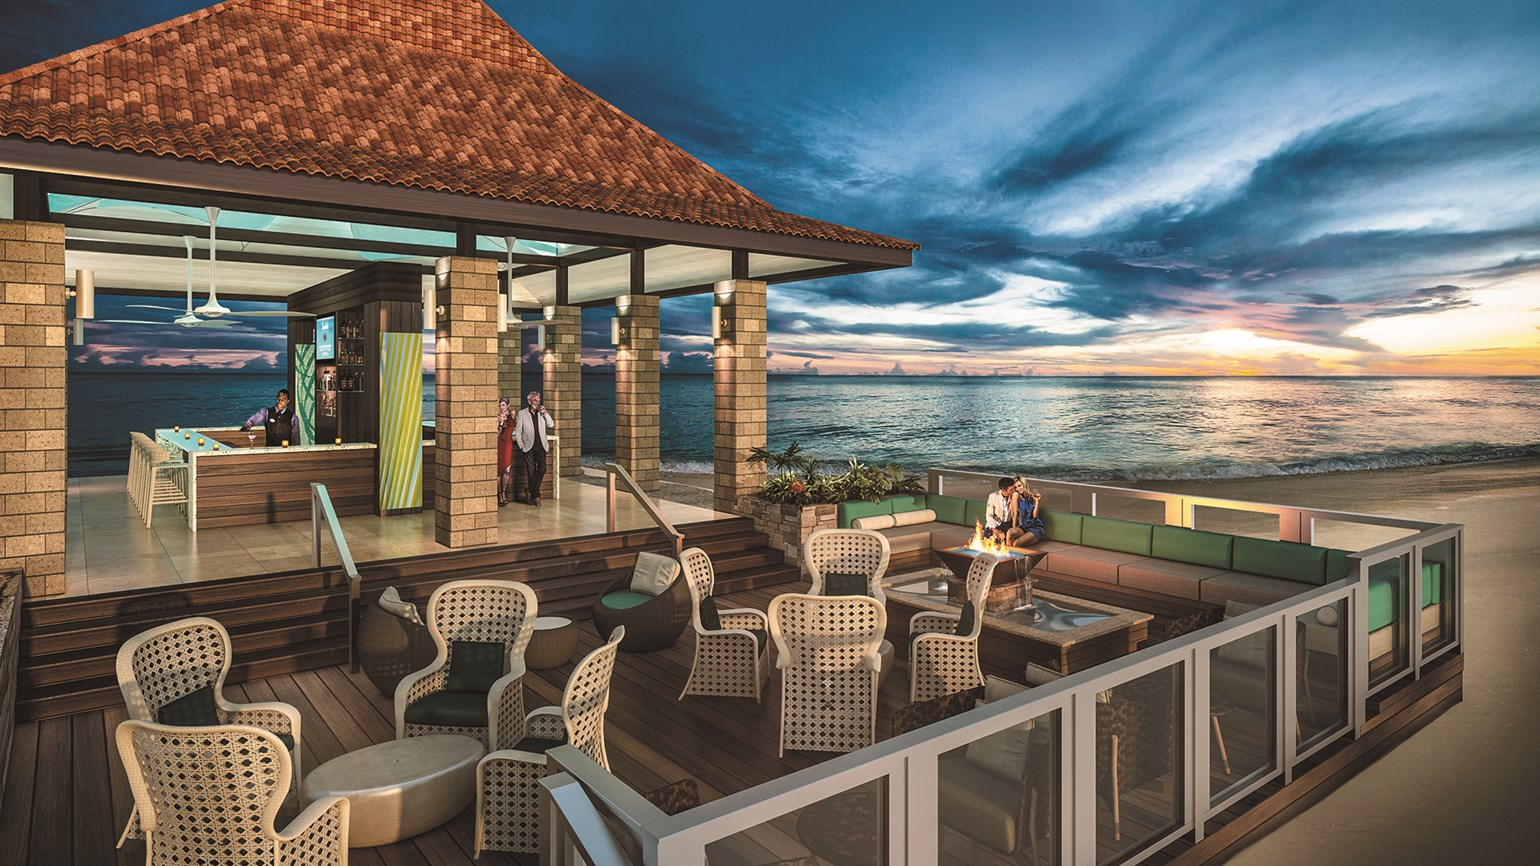 Sandals Montego Bay debuts property upgrades